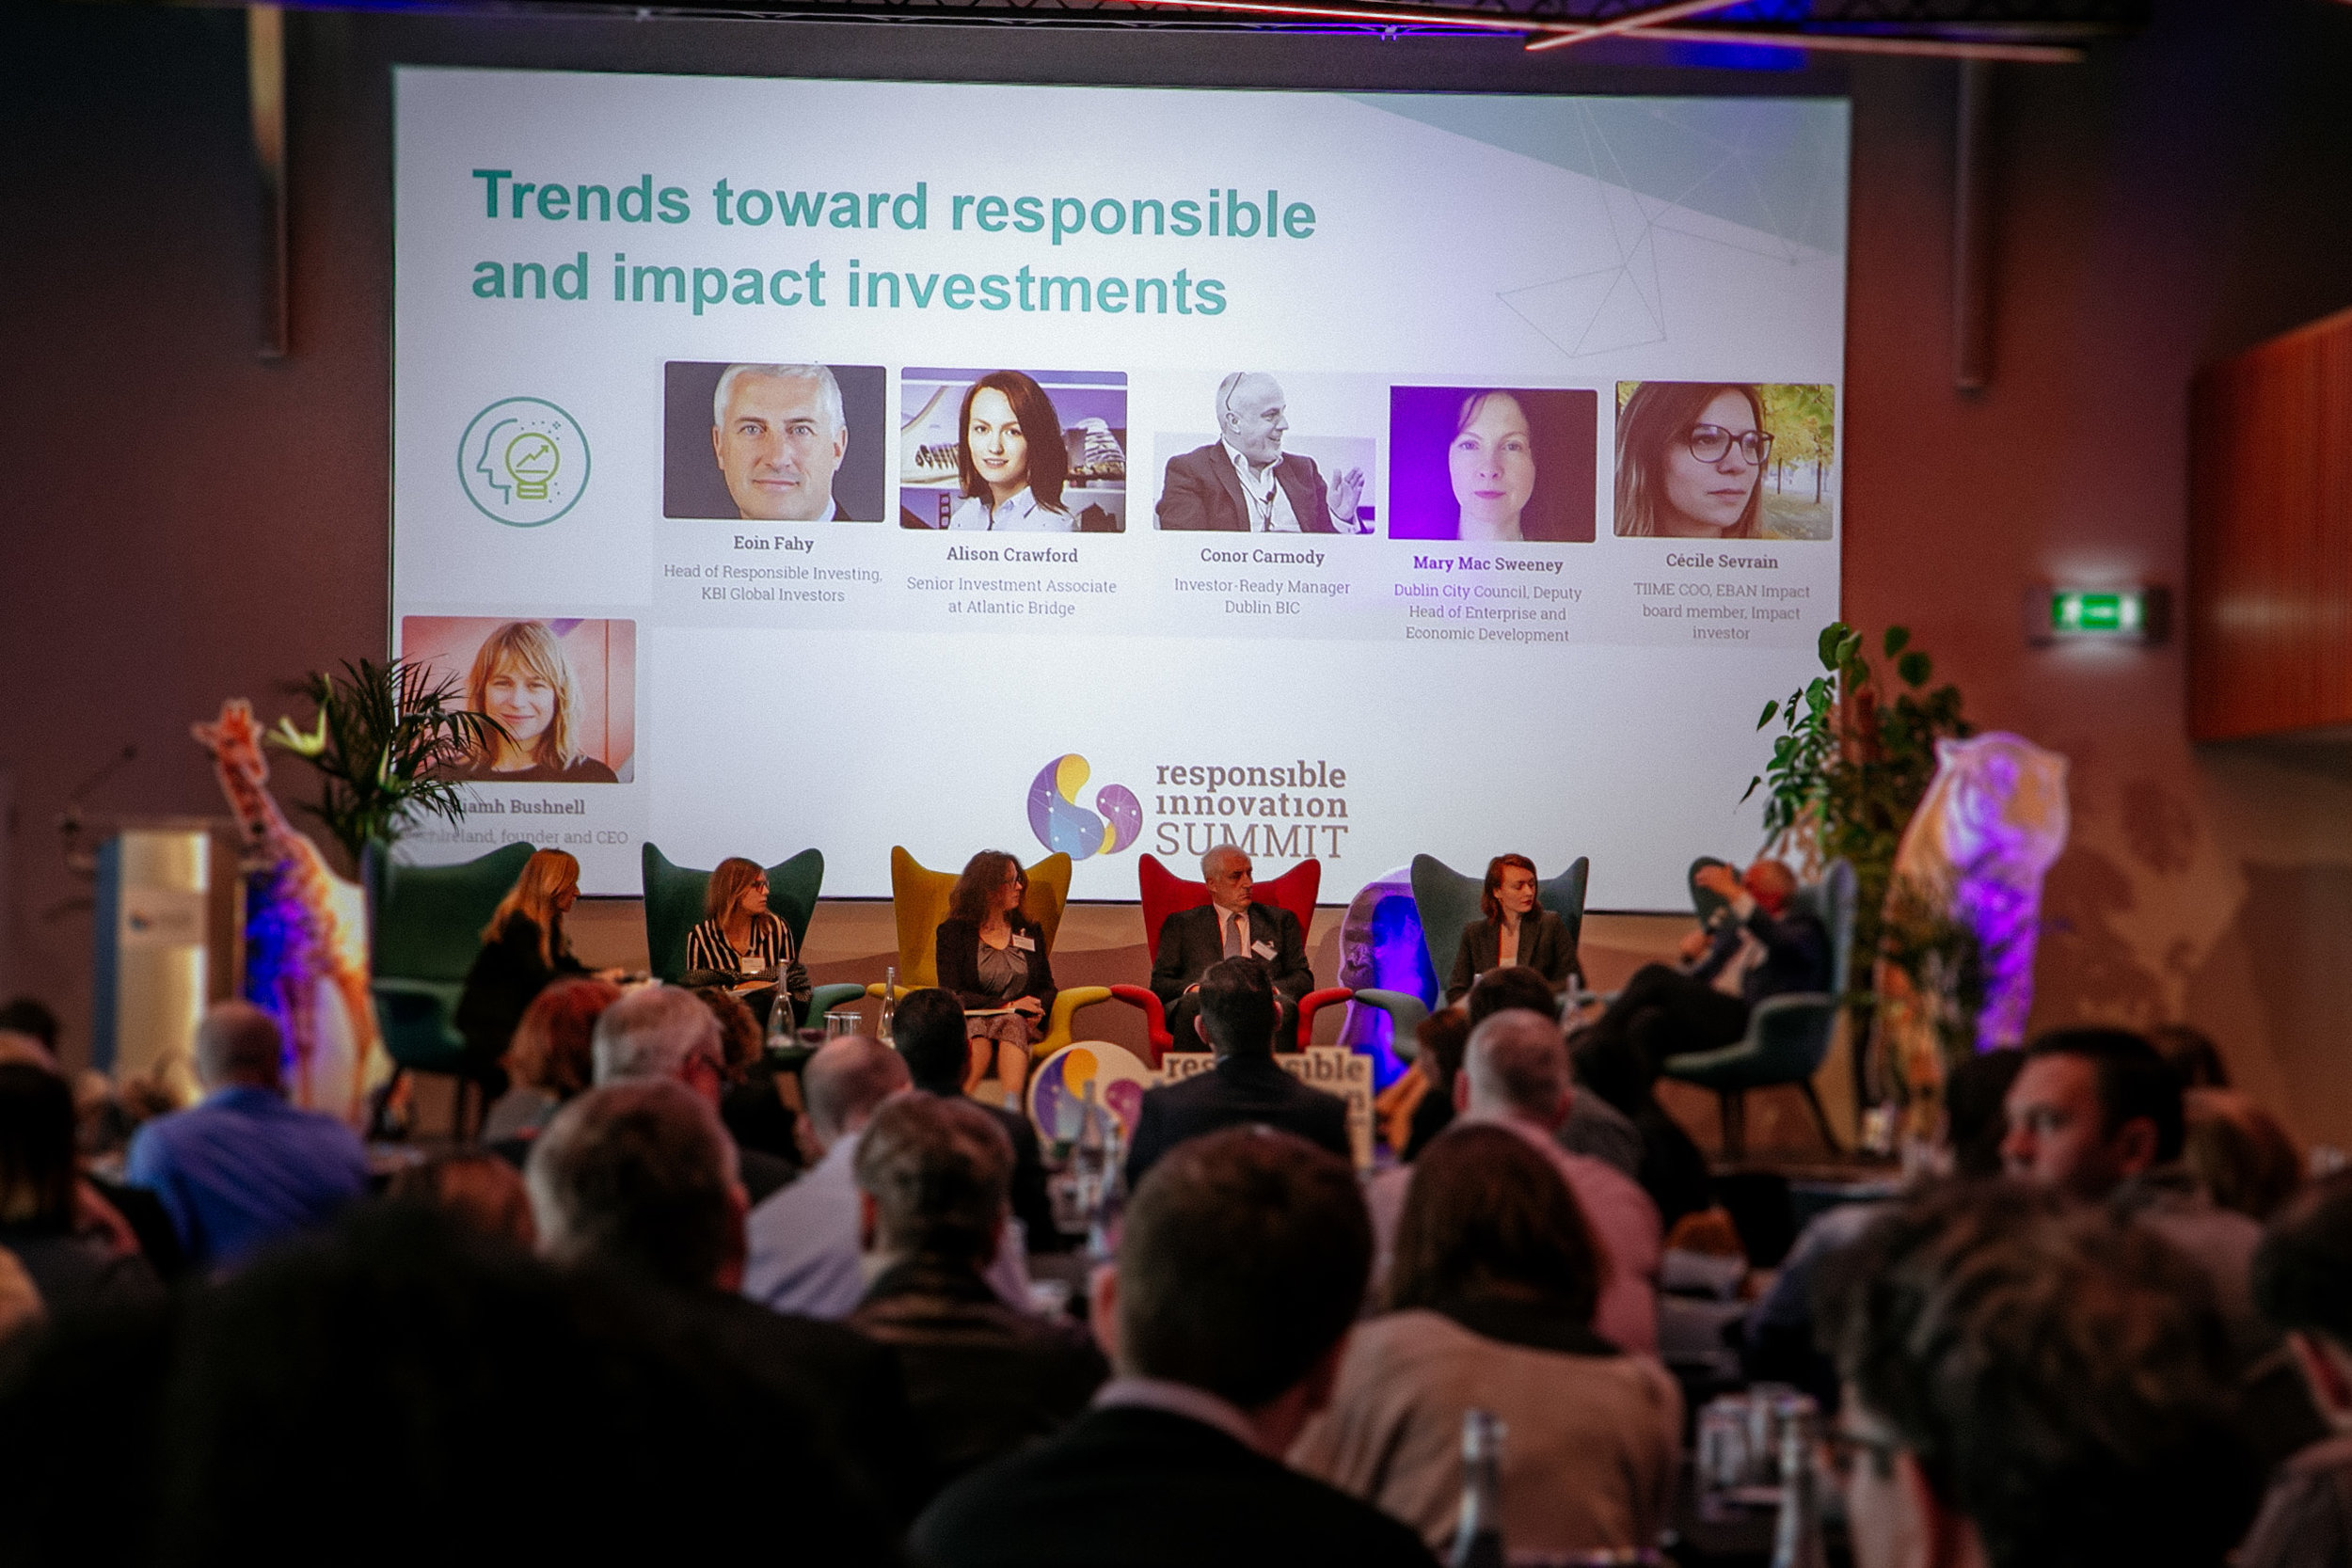 Responsible Innovation Summit 2018 - Dublin, Croke Park